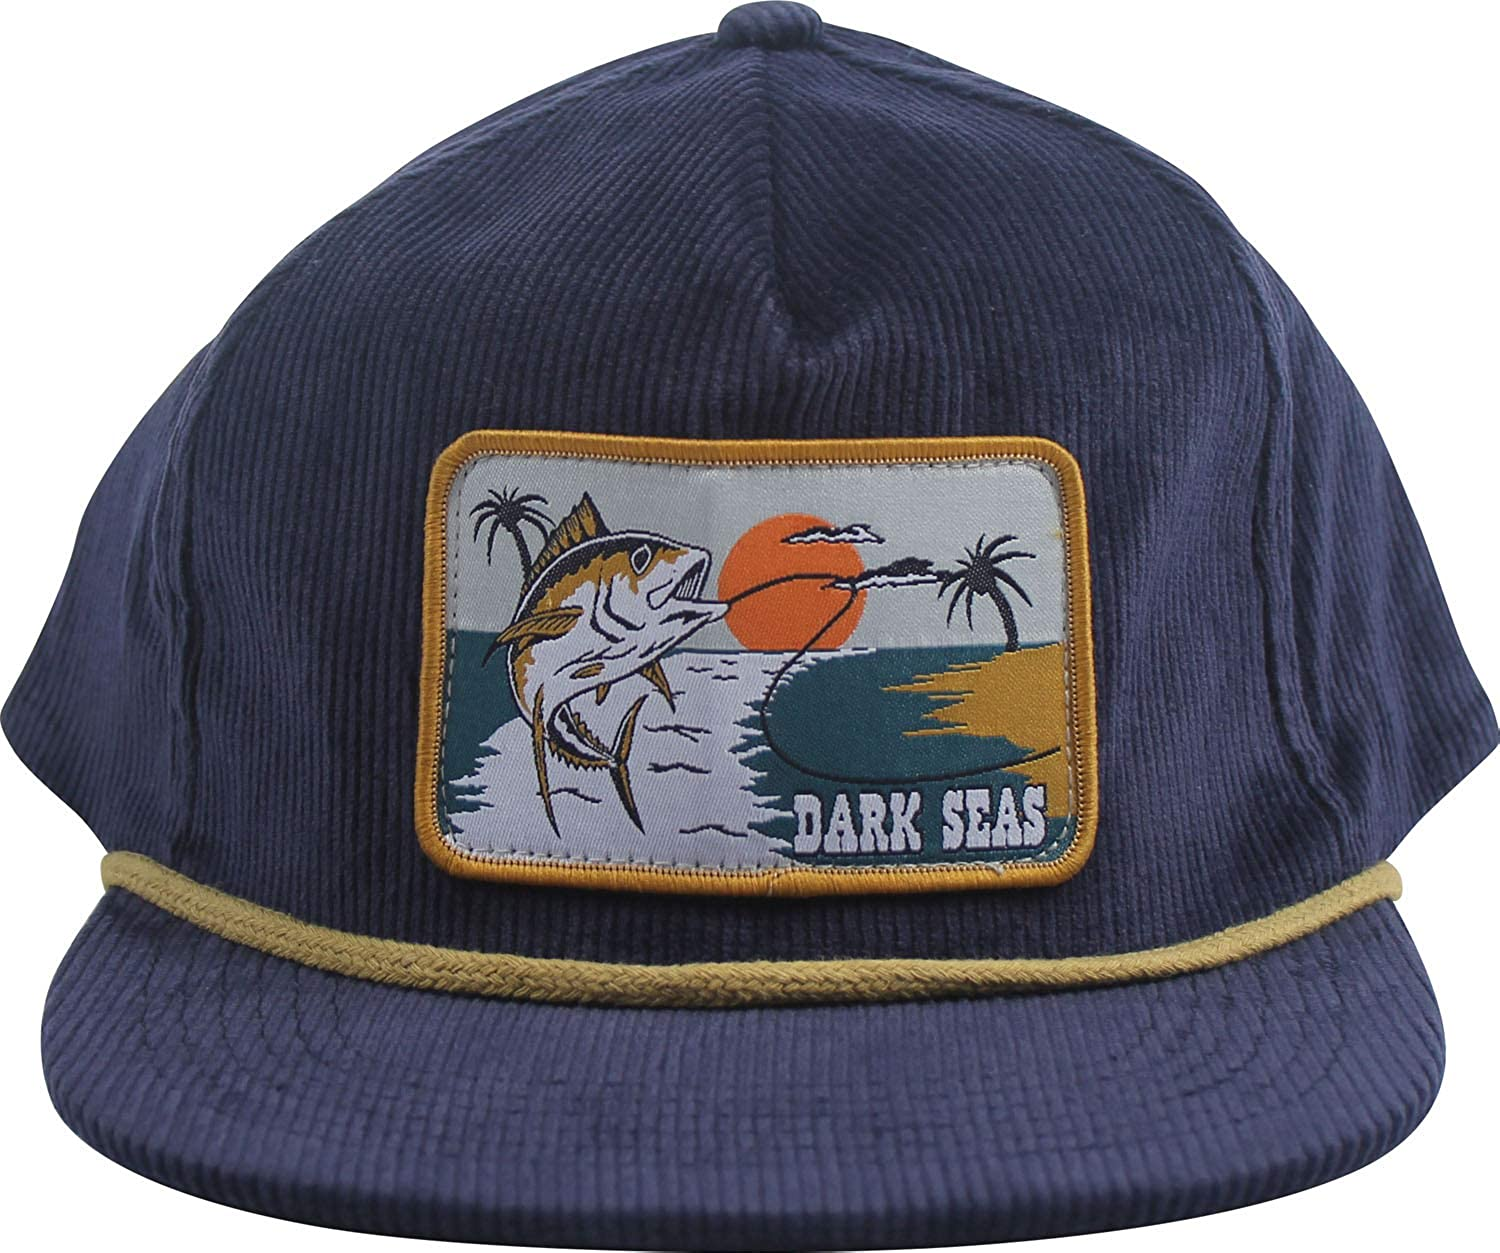 8b9a322beee Dark Seas Swivel Corduroy Snapback Hat Dark Navy Mens One Size at Amazon  Men s Clothing store